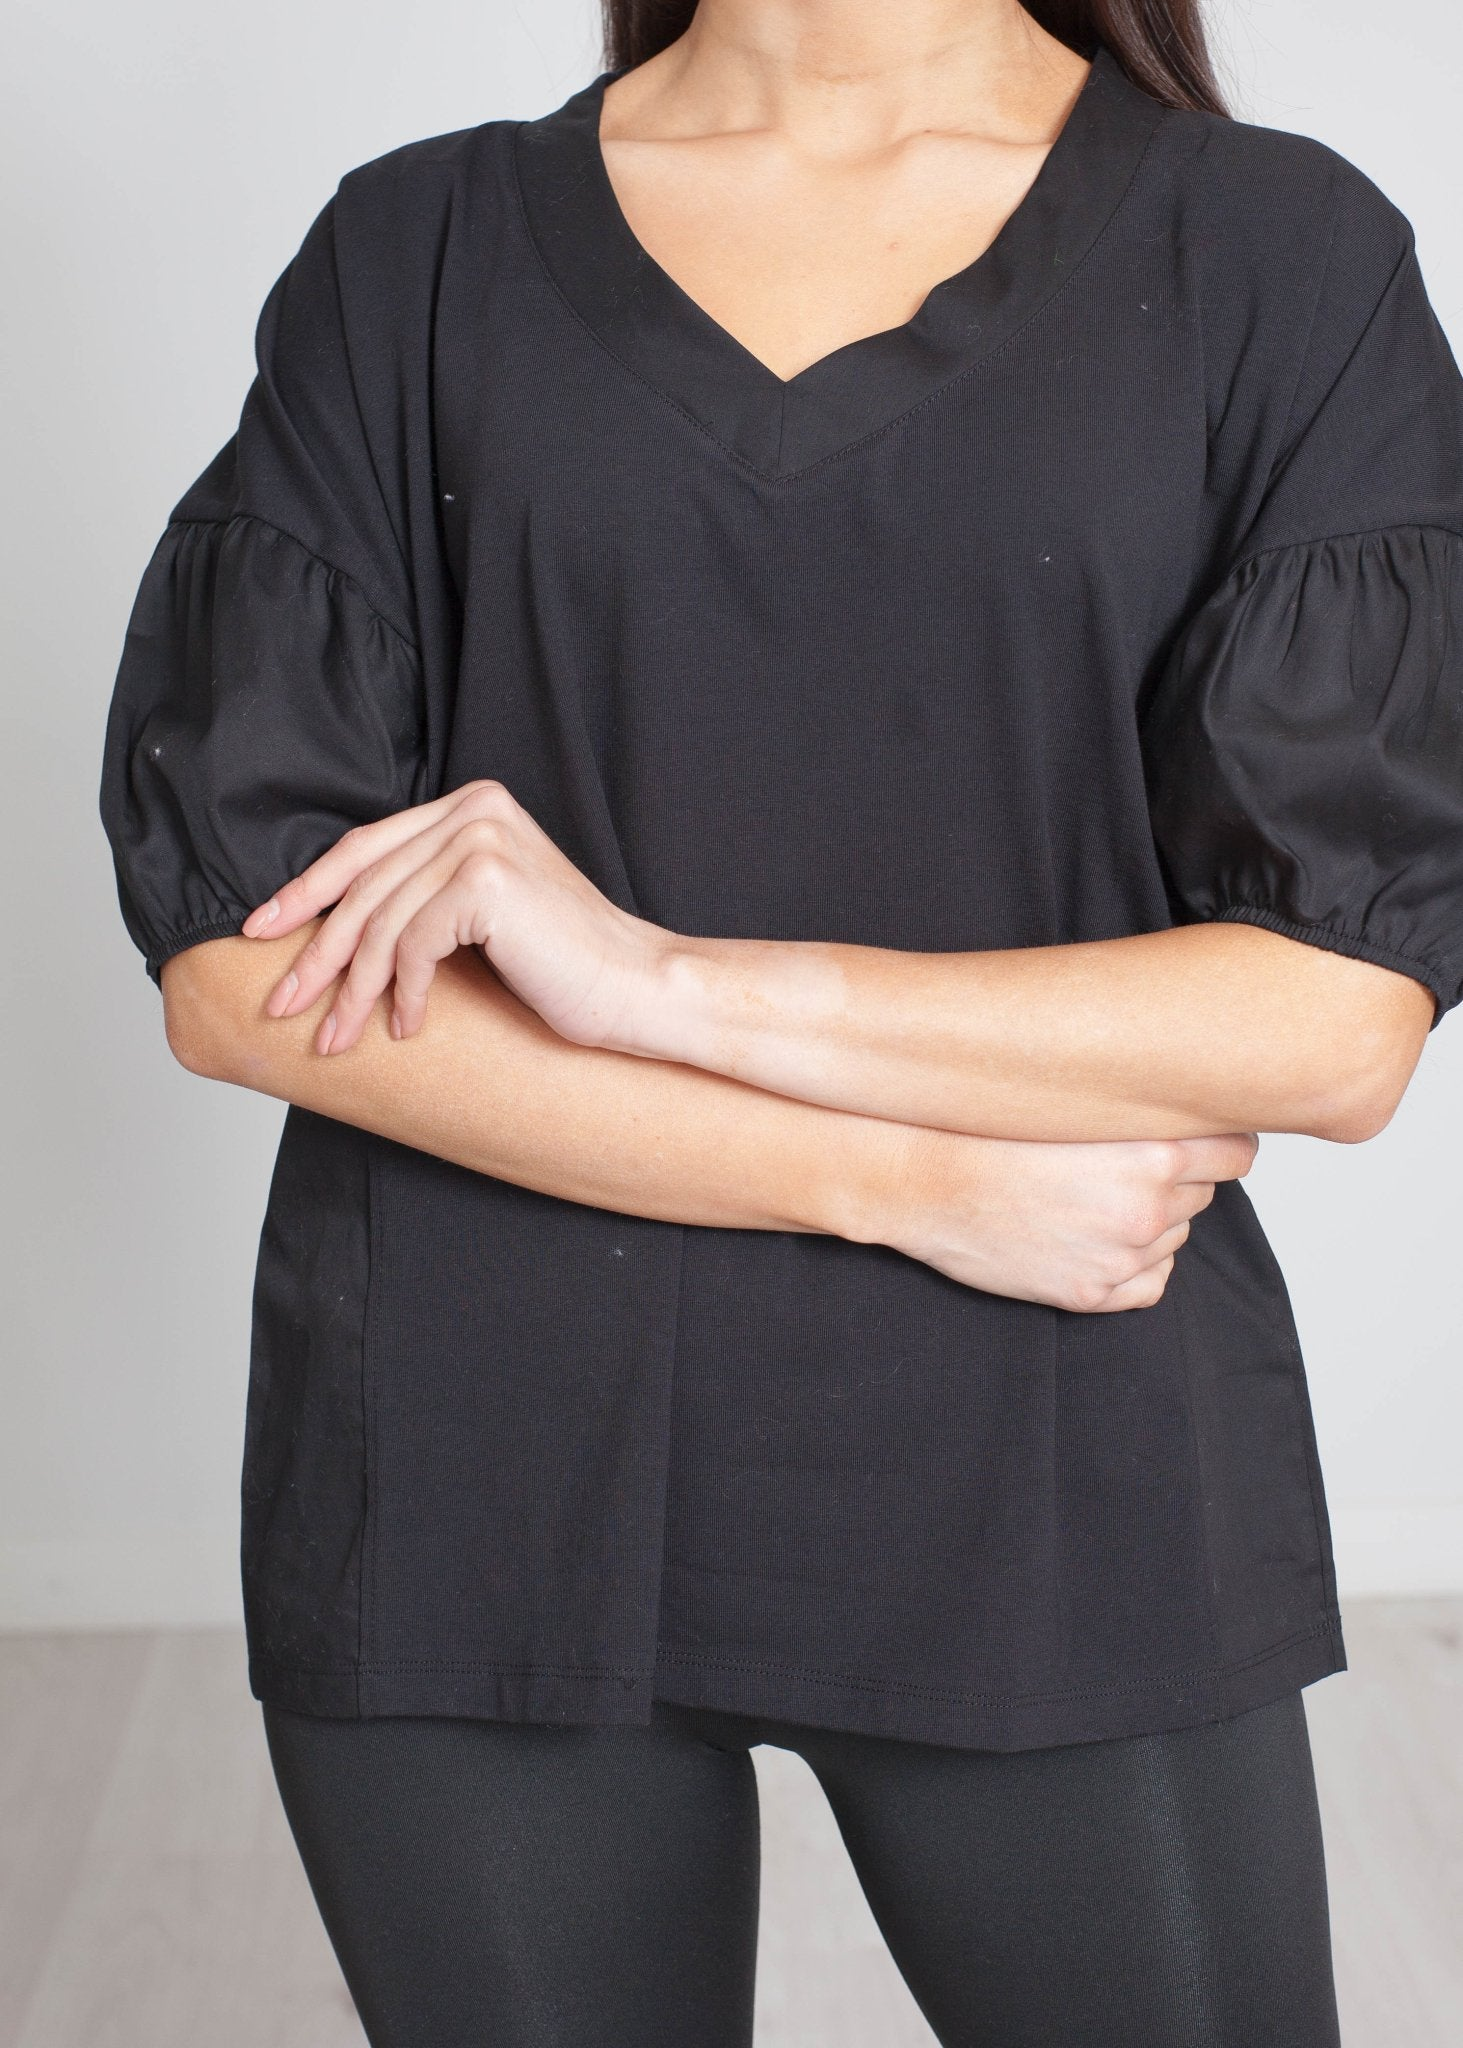 Cleo V-Neck T-Shirt In Black - The Walk in Wardrobe